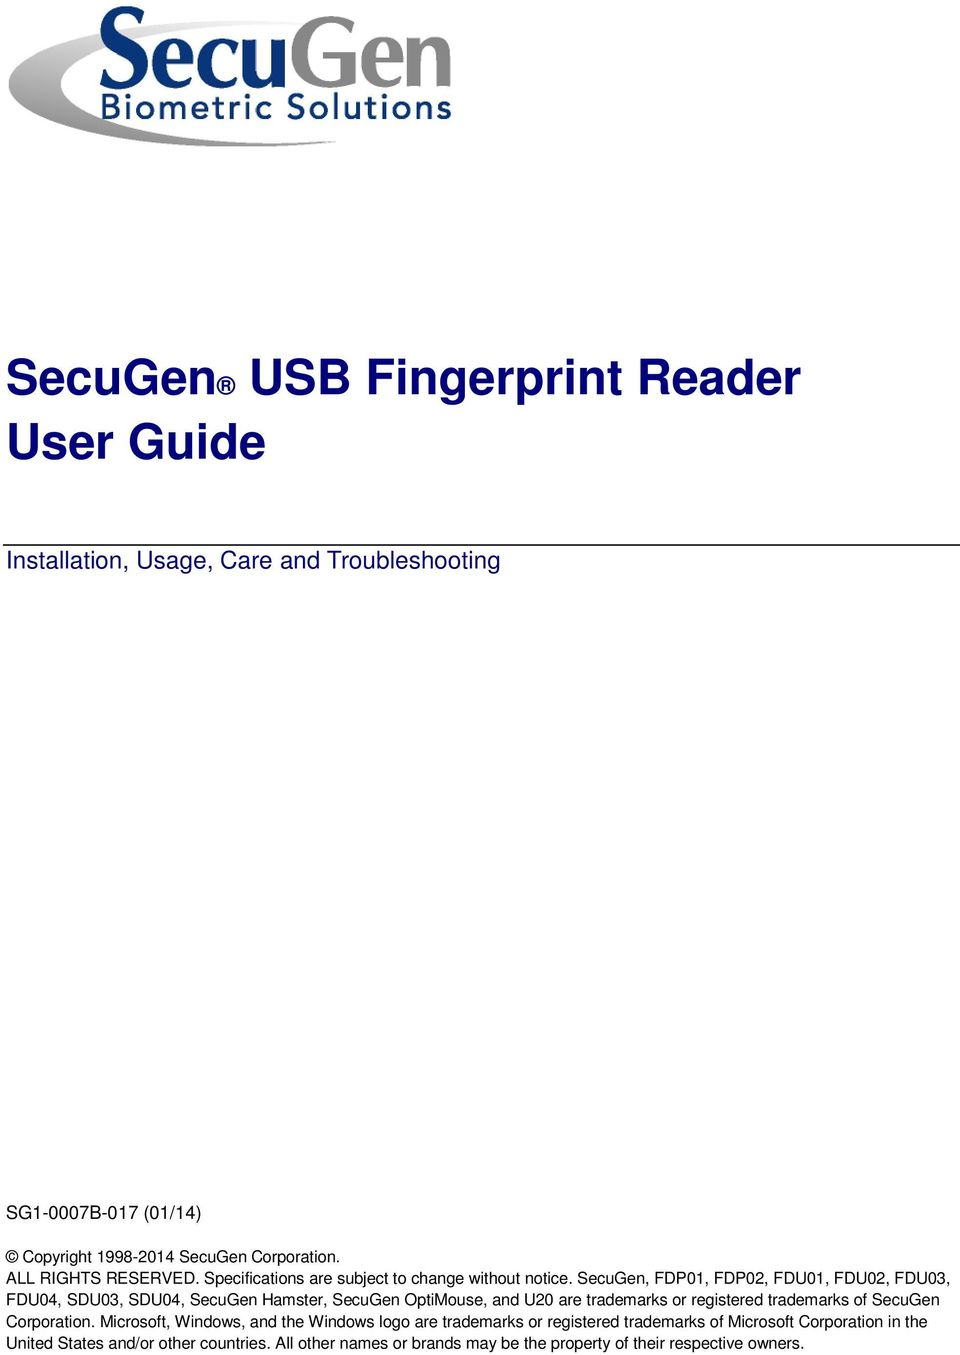 SecuGen USB Fingerprint Reader User Guide - PDF